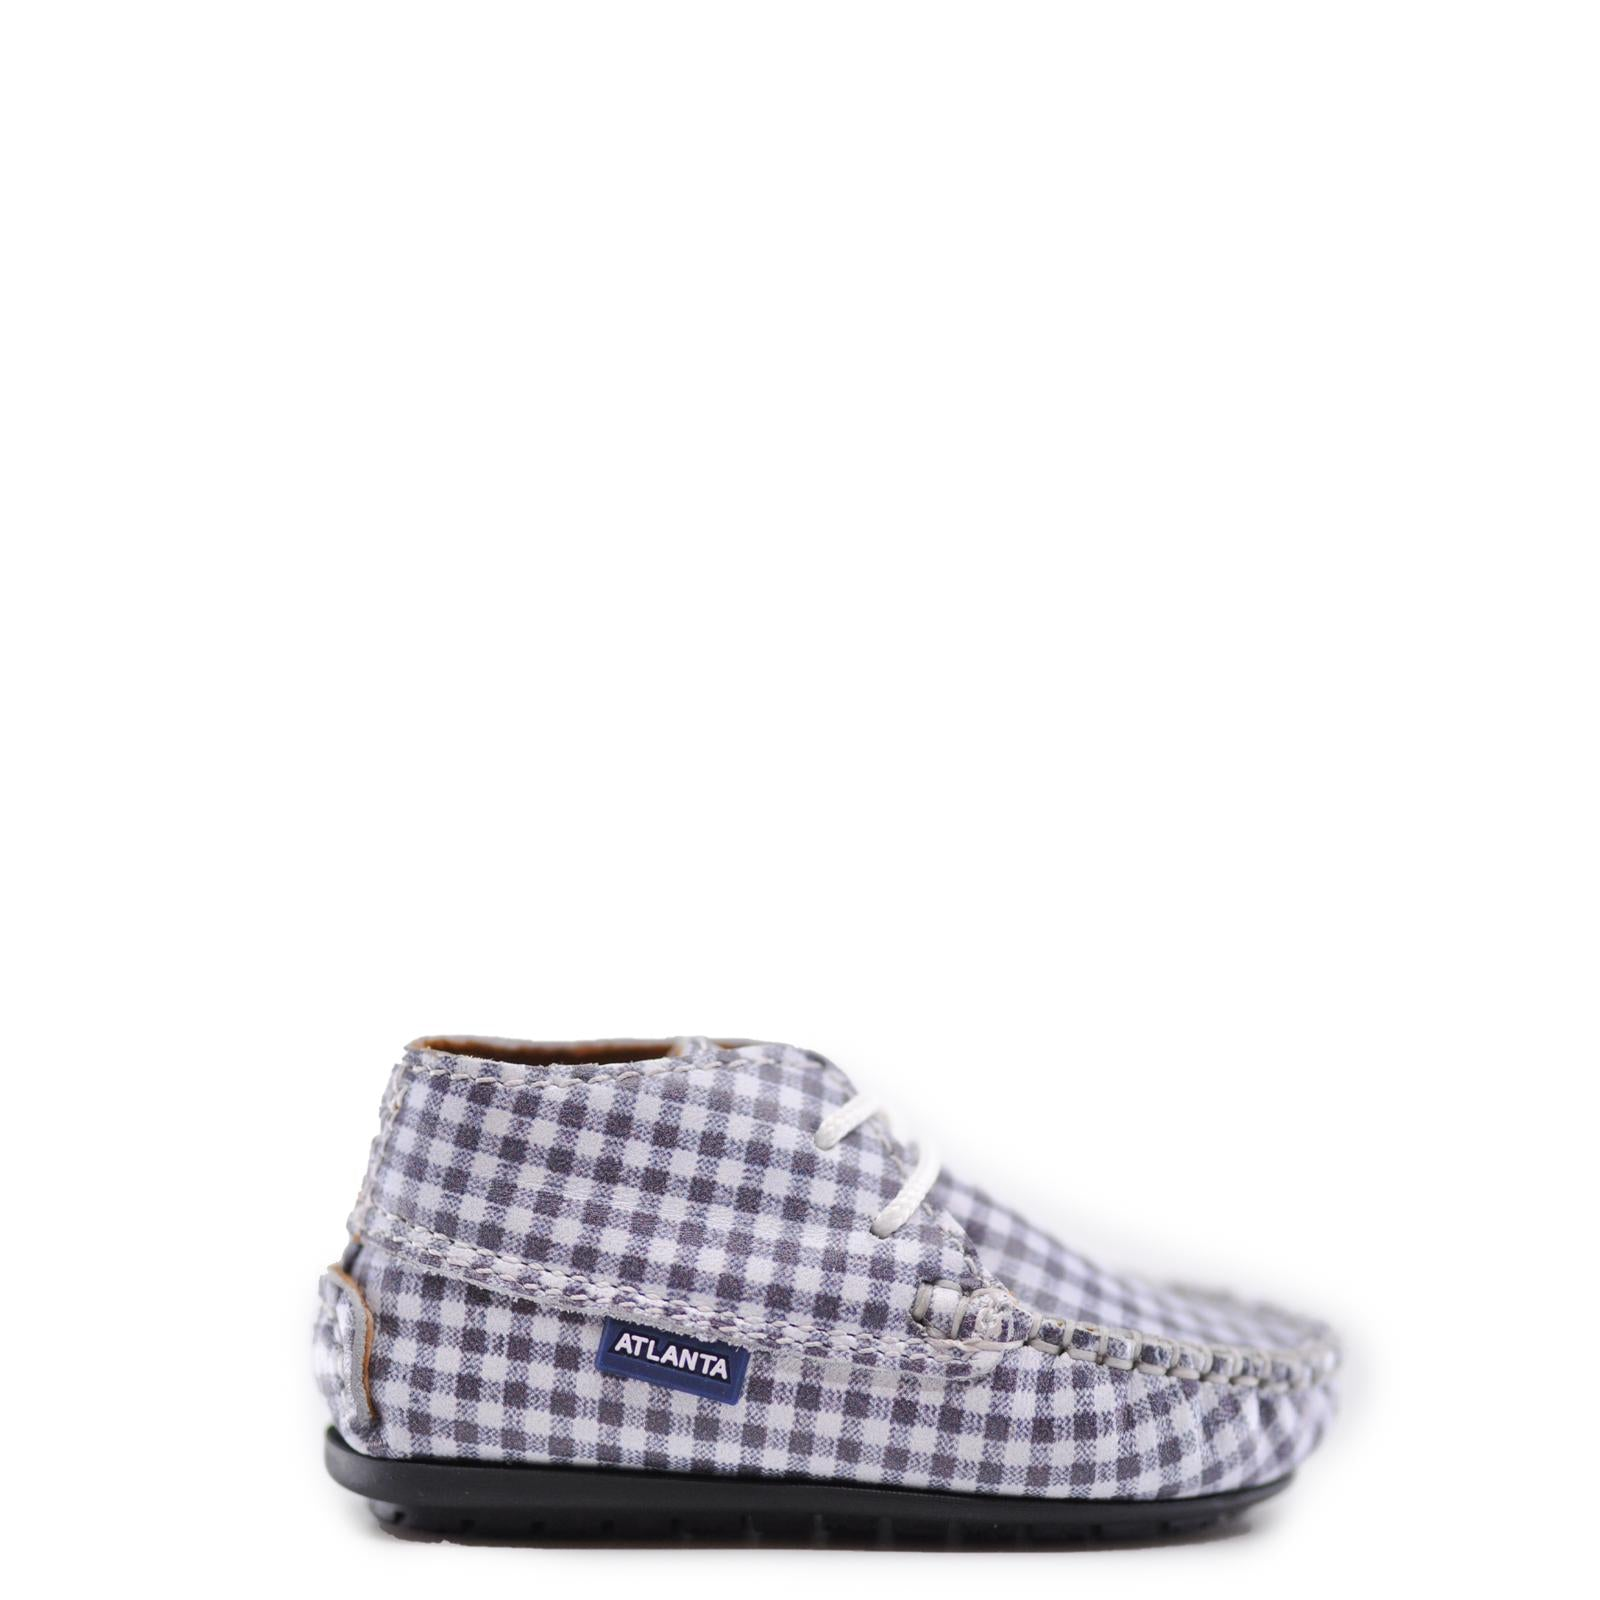 Atlanta Mocassin Gray Gingham Baby Bootie-Tassel Children Shoes